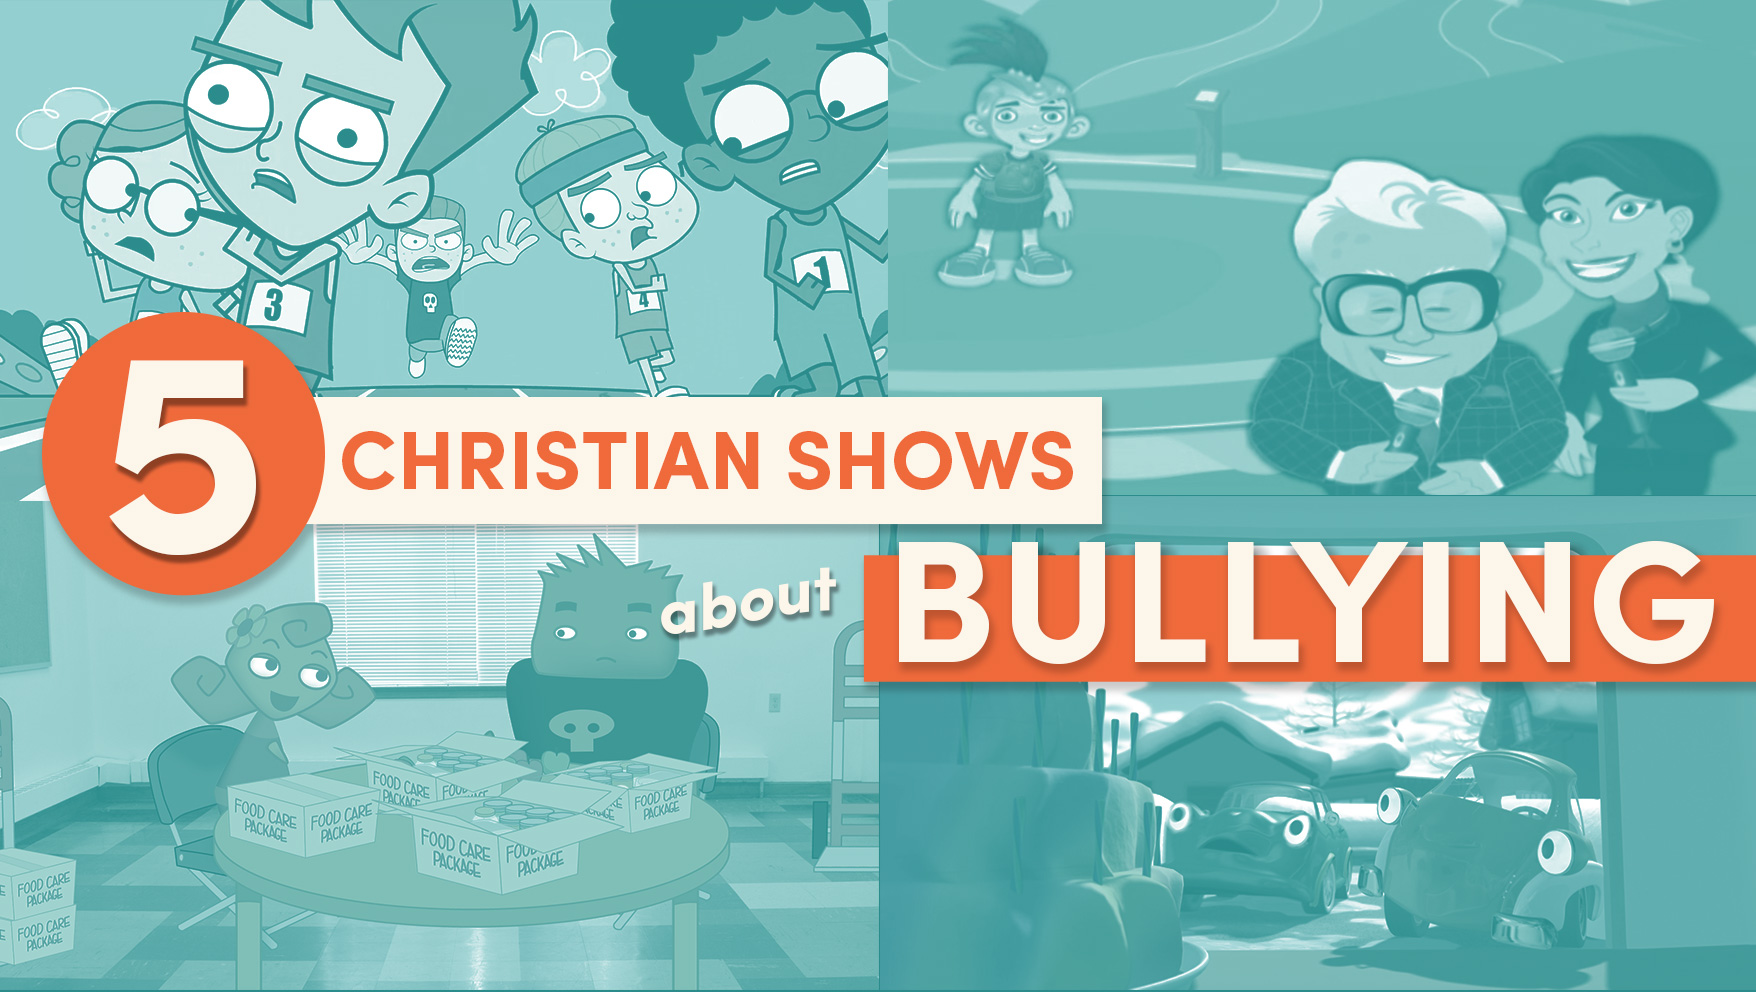 5 Christian Shows about Bullying